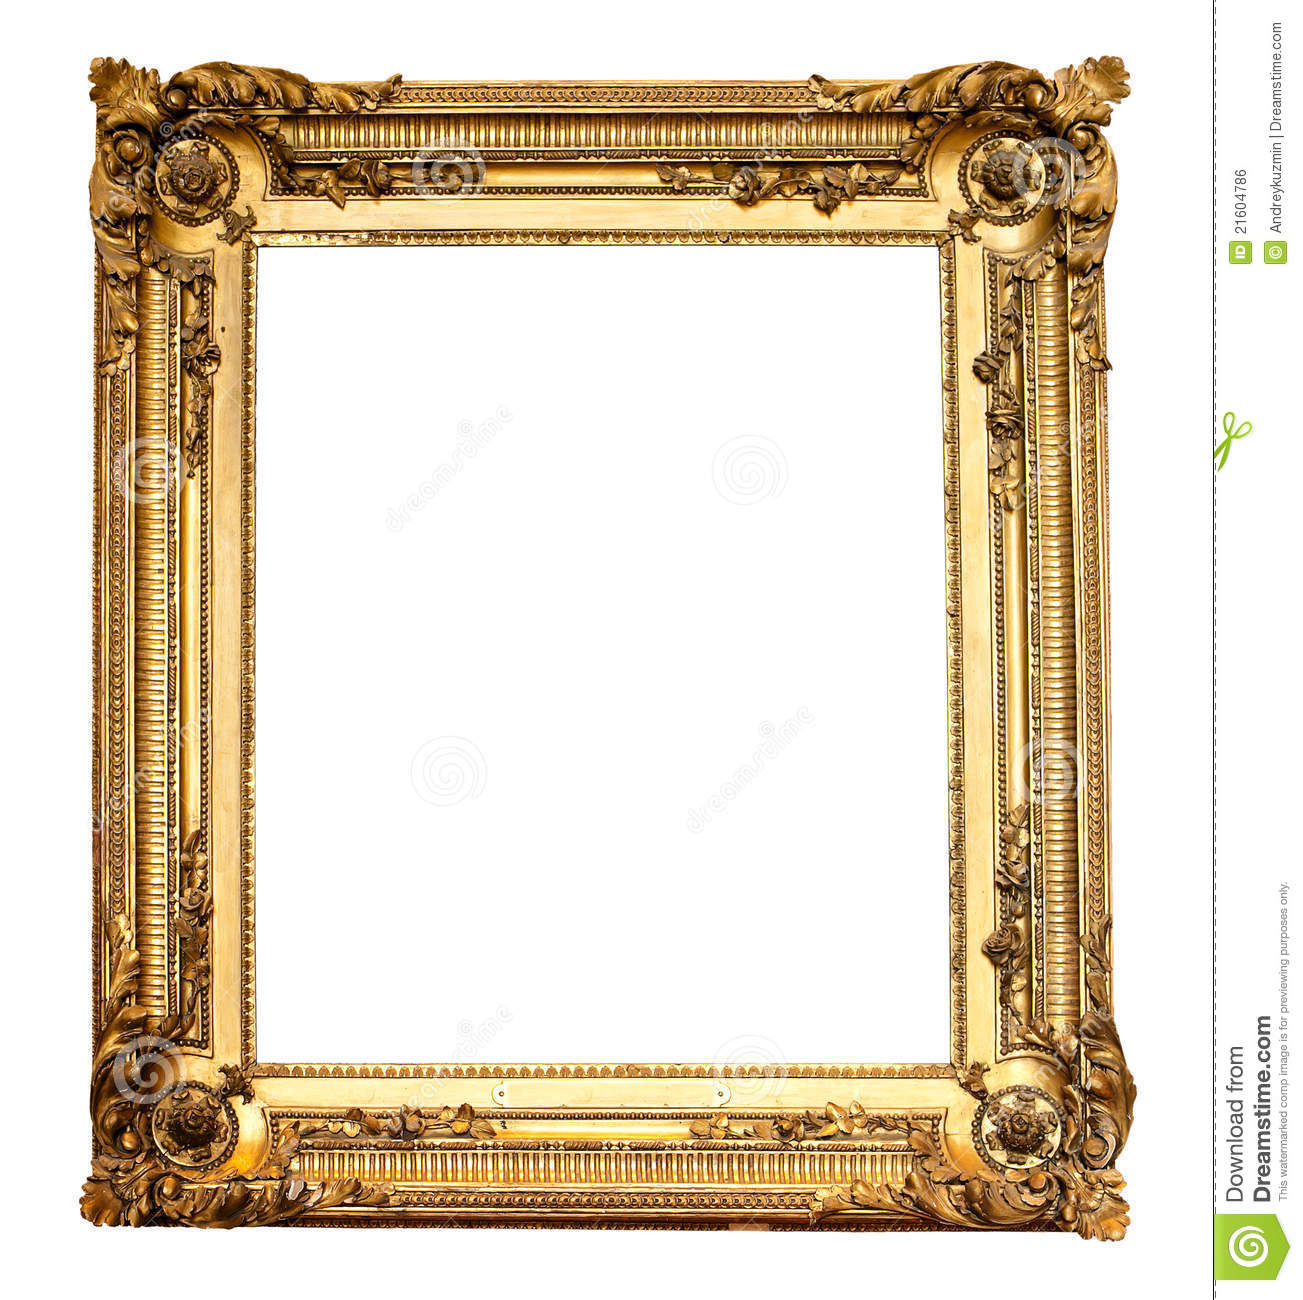 Real Old Antique Gold Frame Isolated Royalty Free Stock